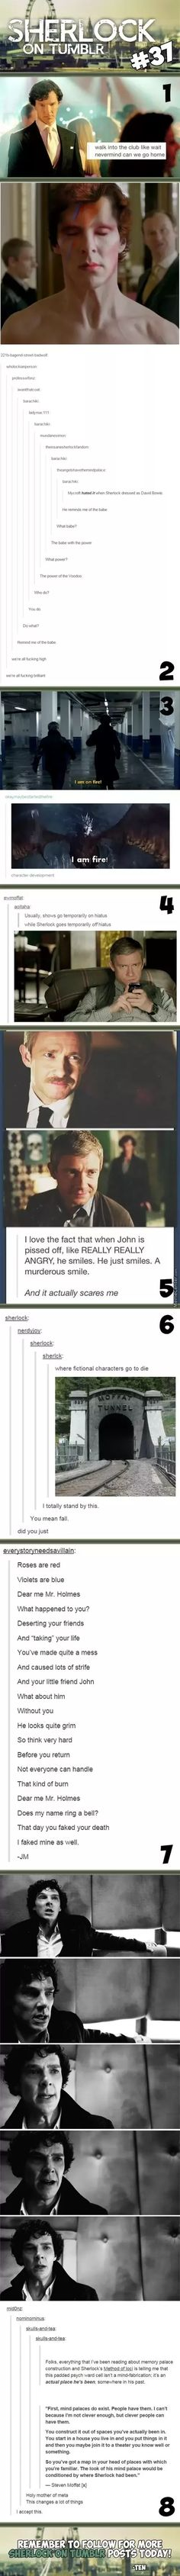 Sherlock On Tumblr #37 #IAmAGeek